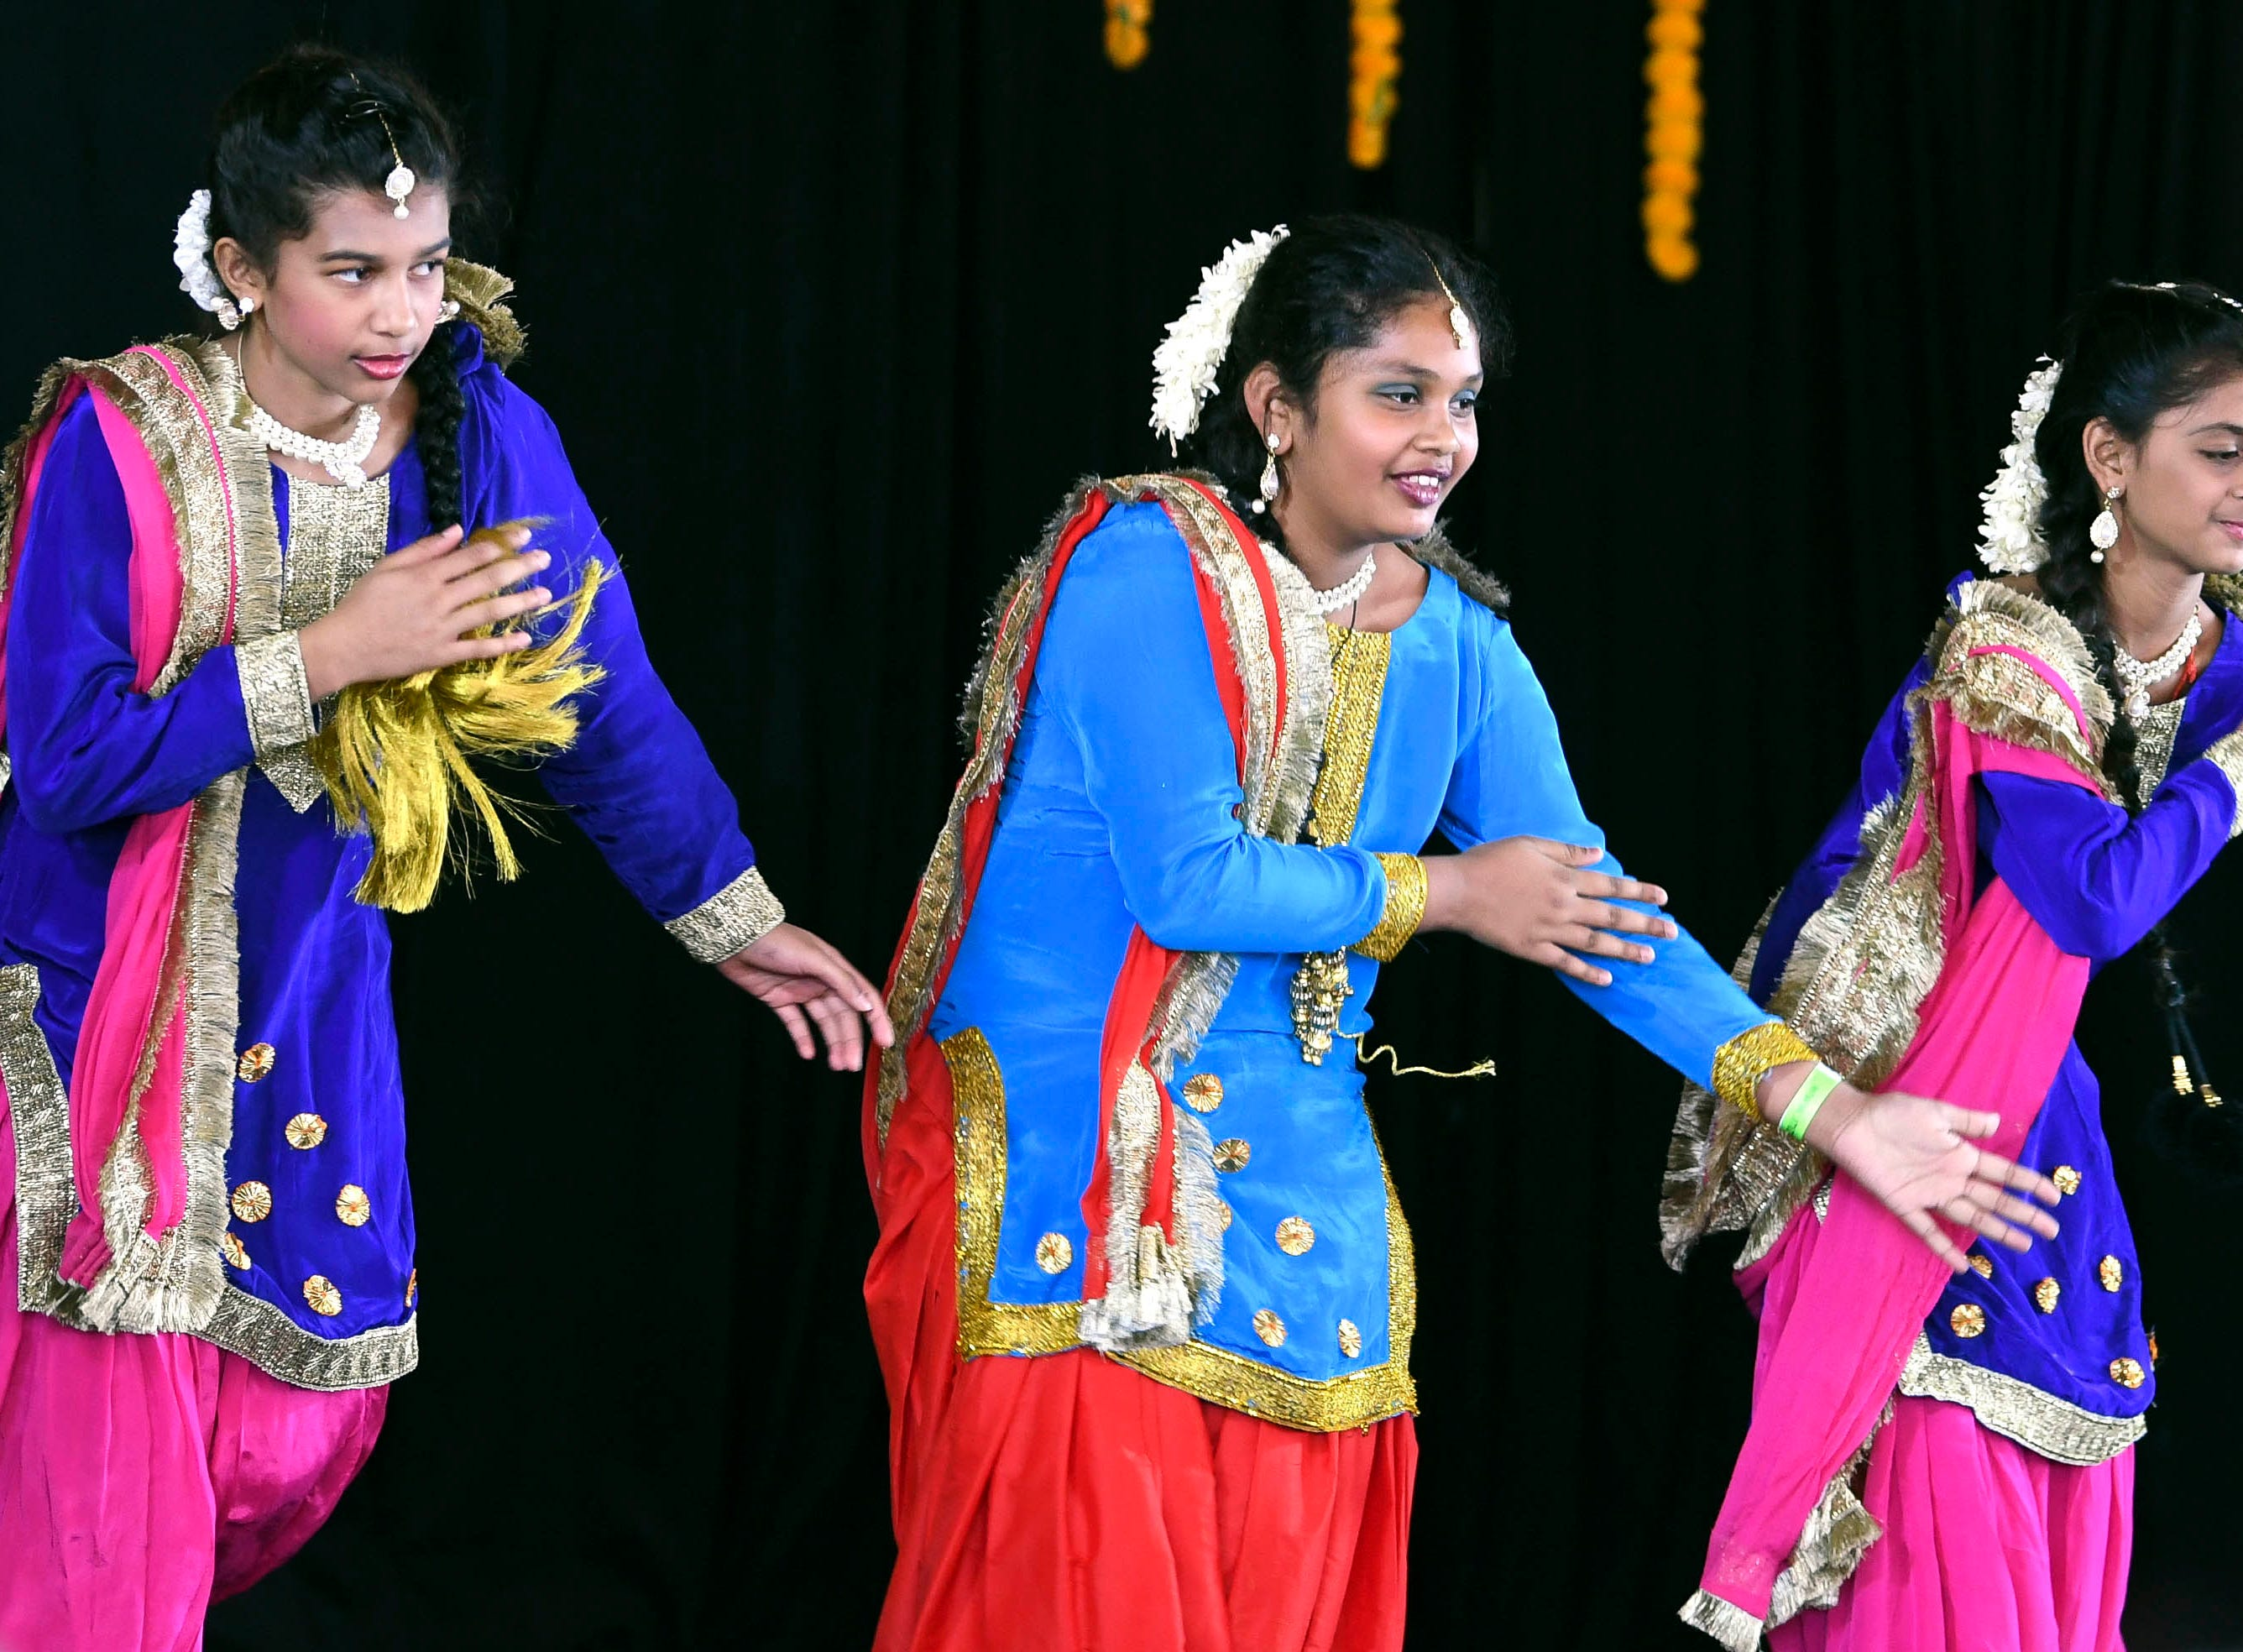 Members of Punjabi Kudiyan perform on stage Saturday during Indiafest at Wickham Park's main pavilion.